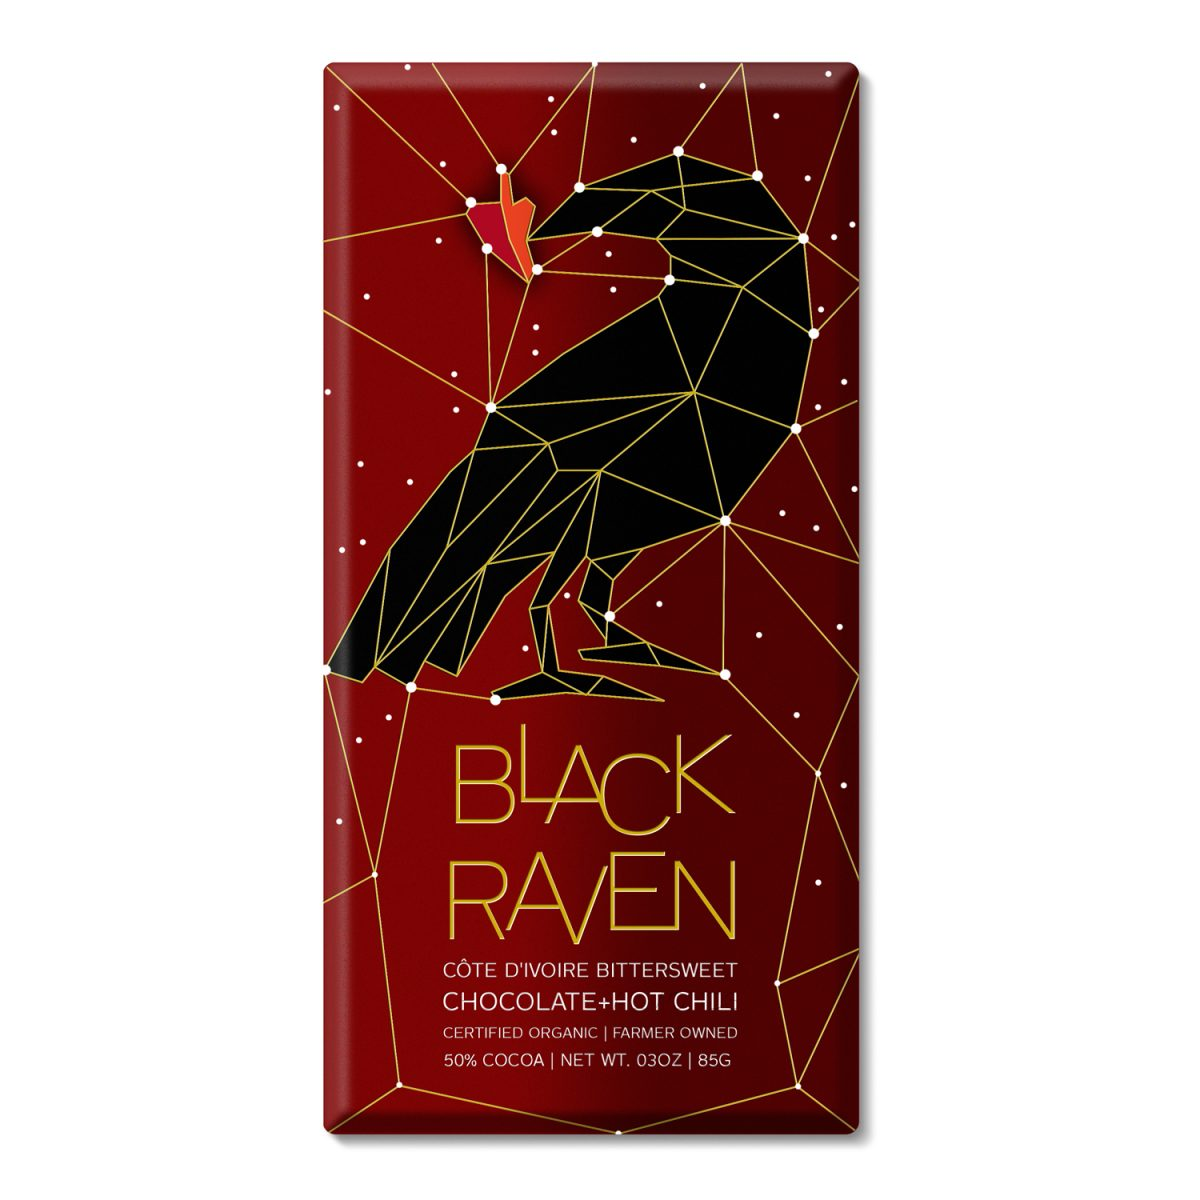 Black Raven Chocolate: Branding Referencing the Constellations